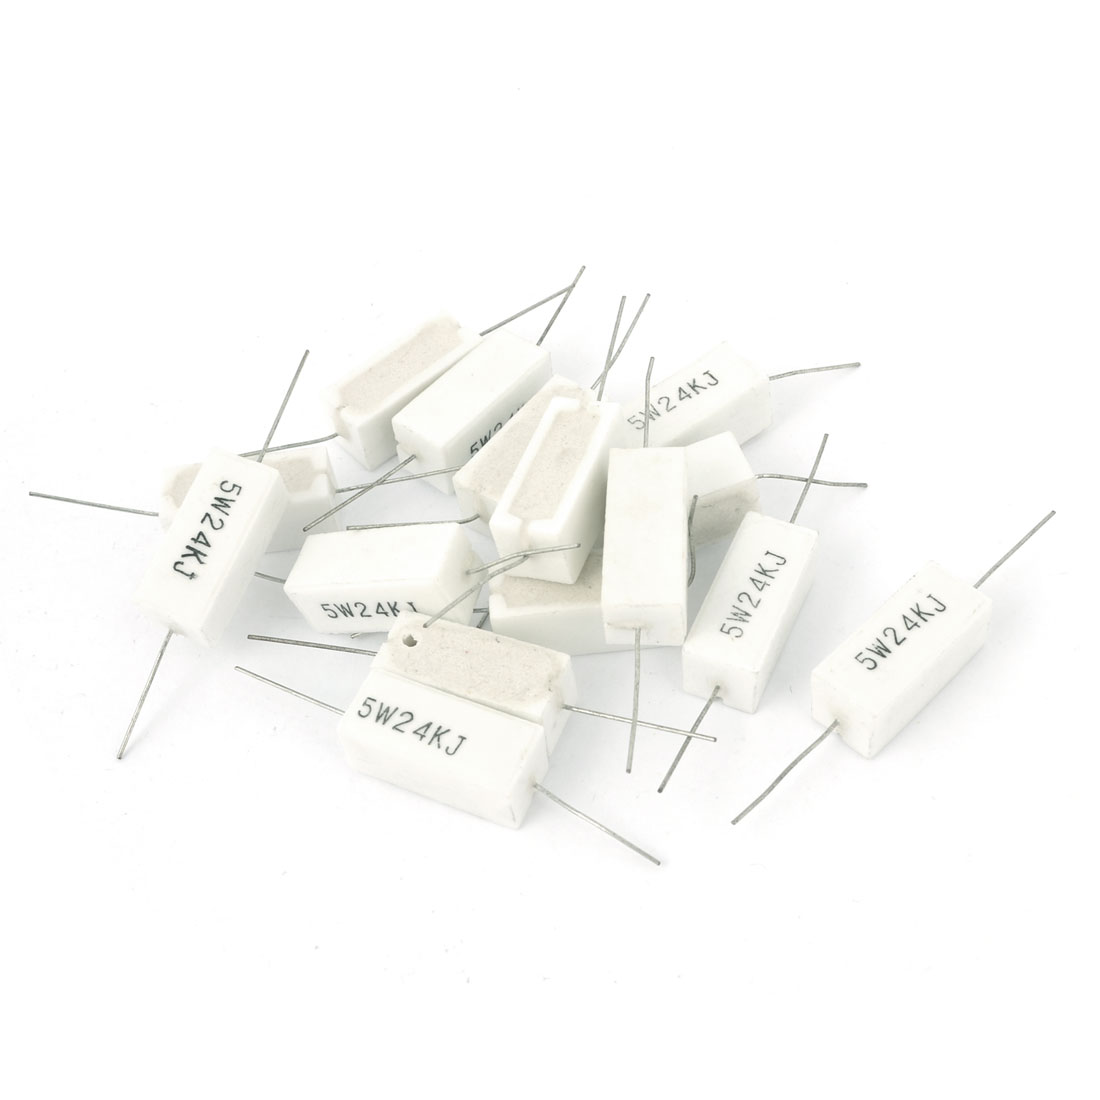 15 Pcs 5W 24K Ohm 5% Radial Lead Ceramic Cement Power Resistor